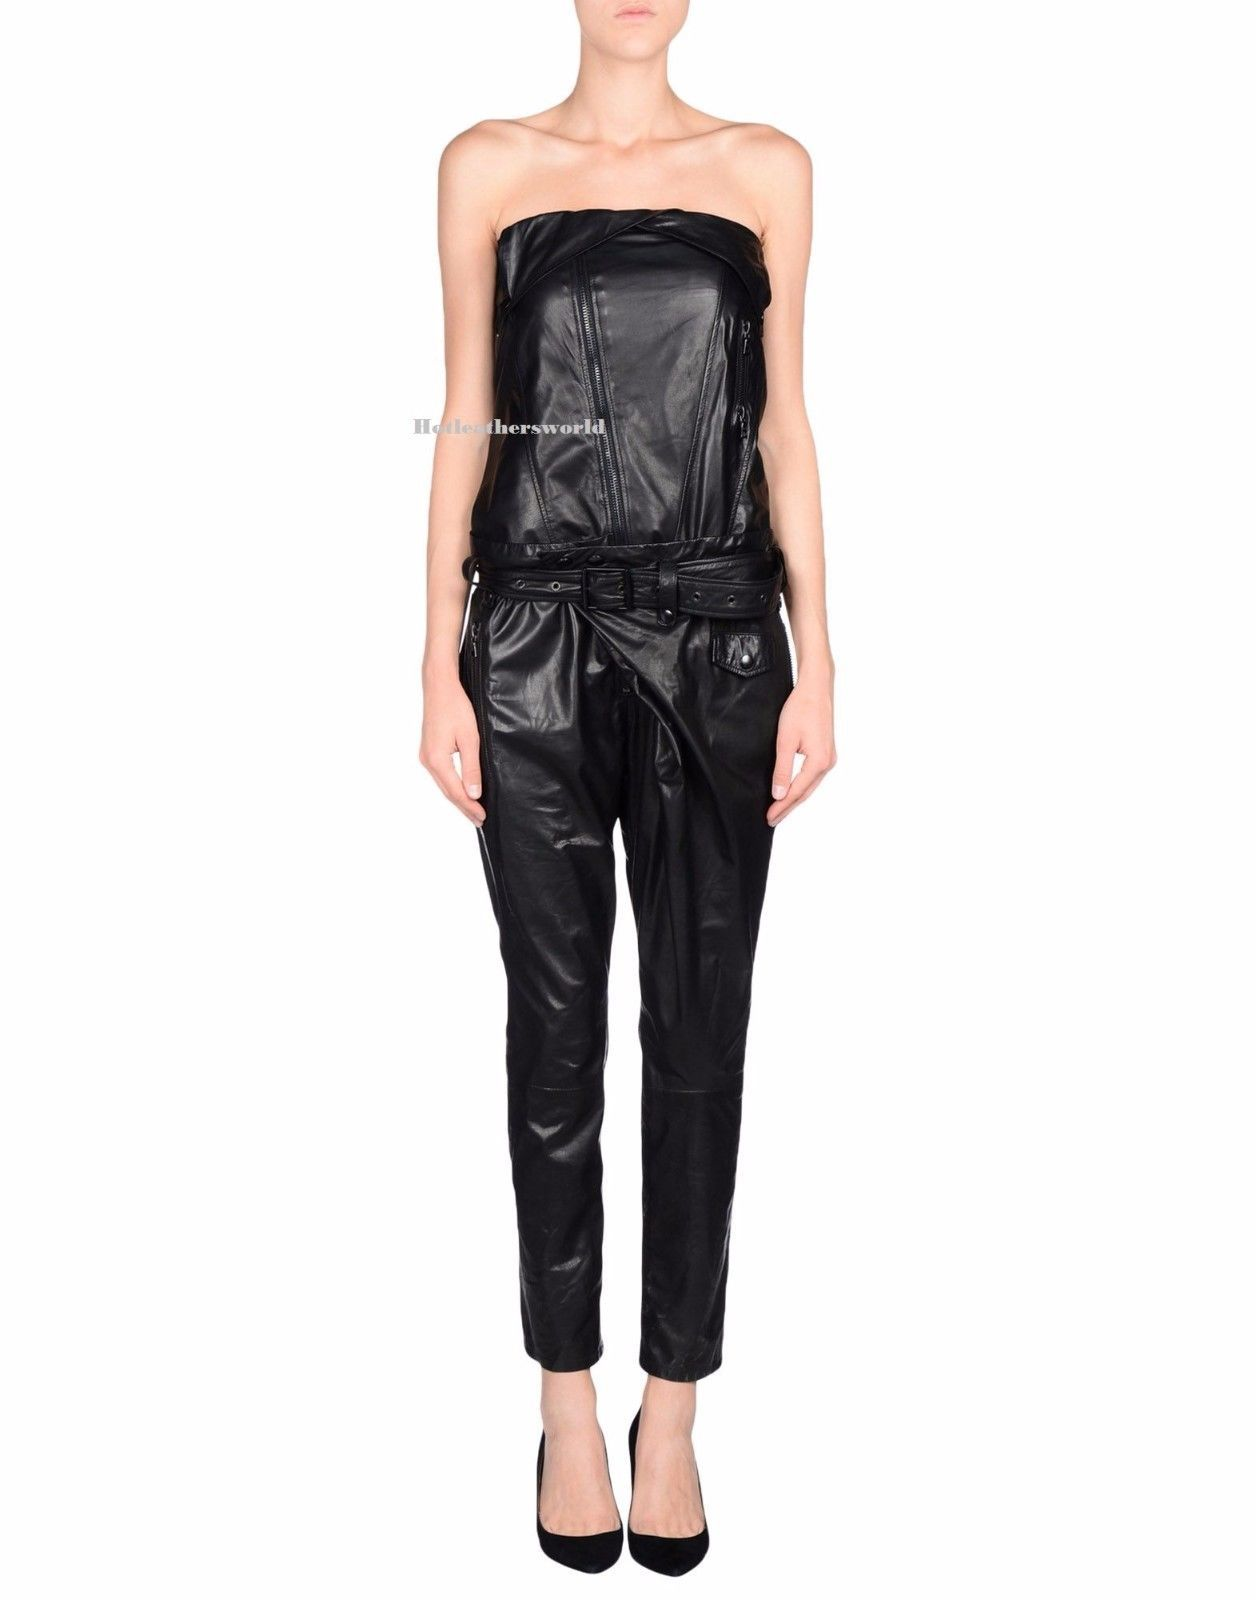 WOMEN LEATHER JUMPSUIT ROMPERS GENUINE LAMBSKIN REAL LEATHER JUMPSUIT-20